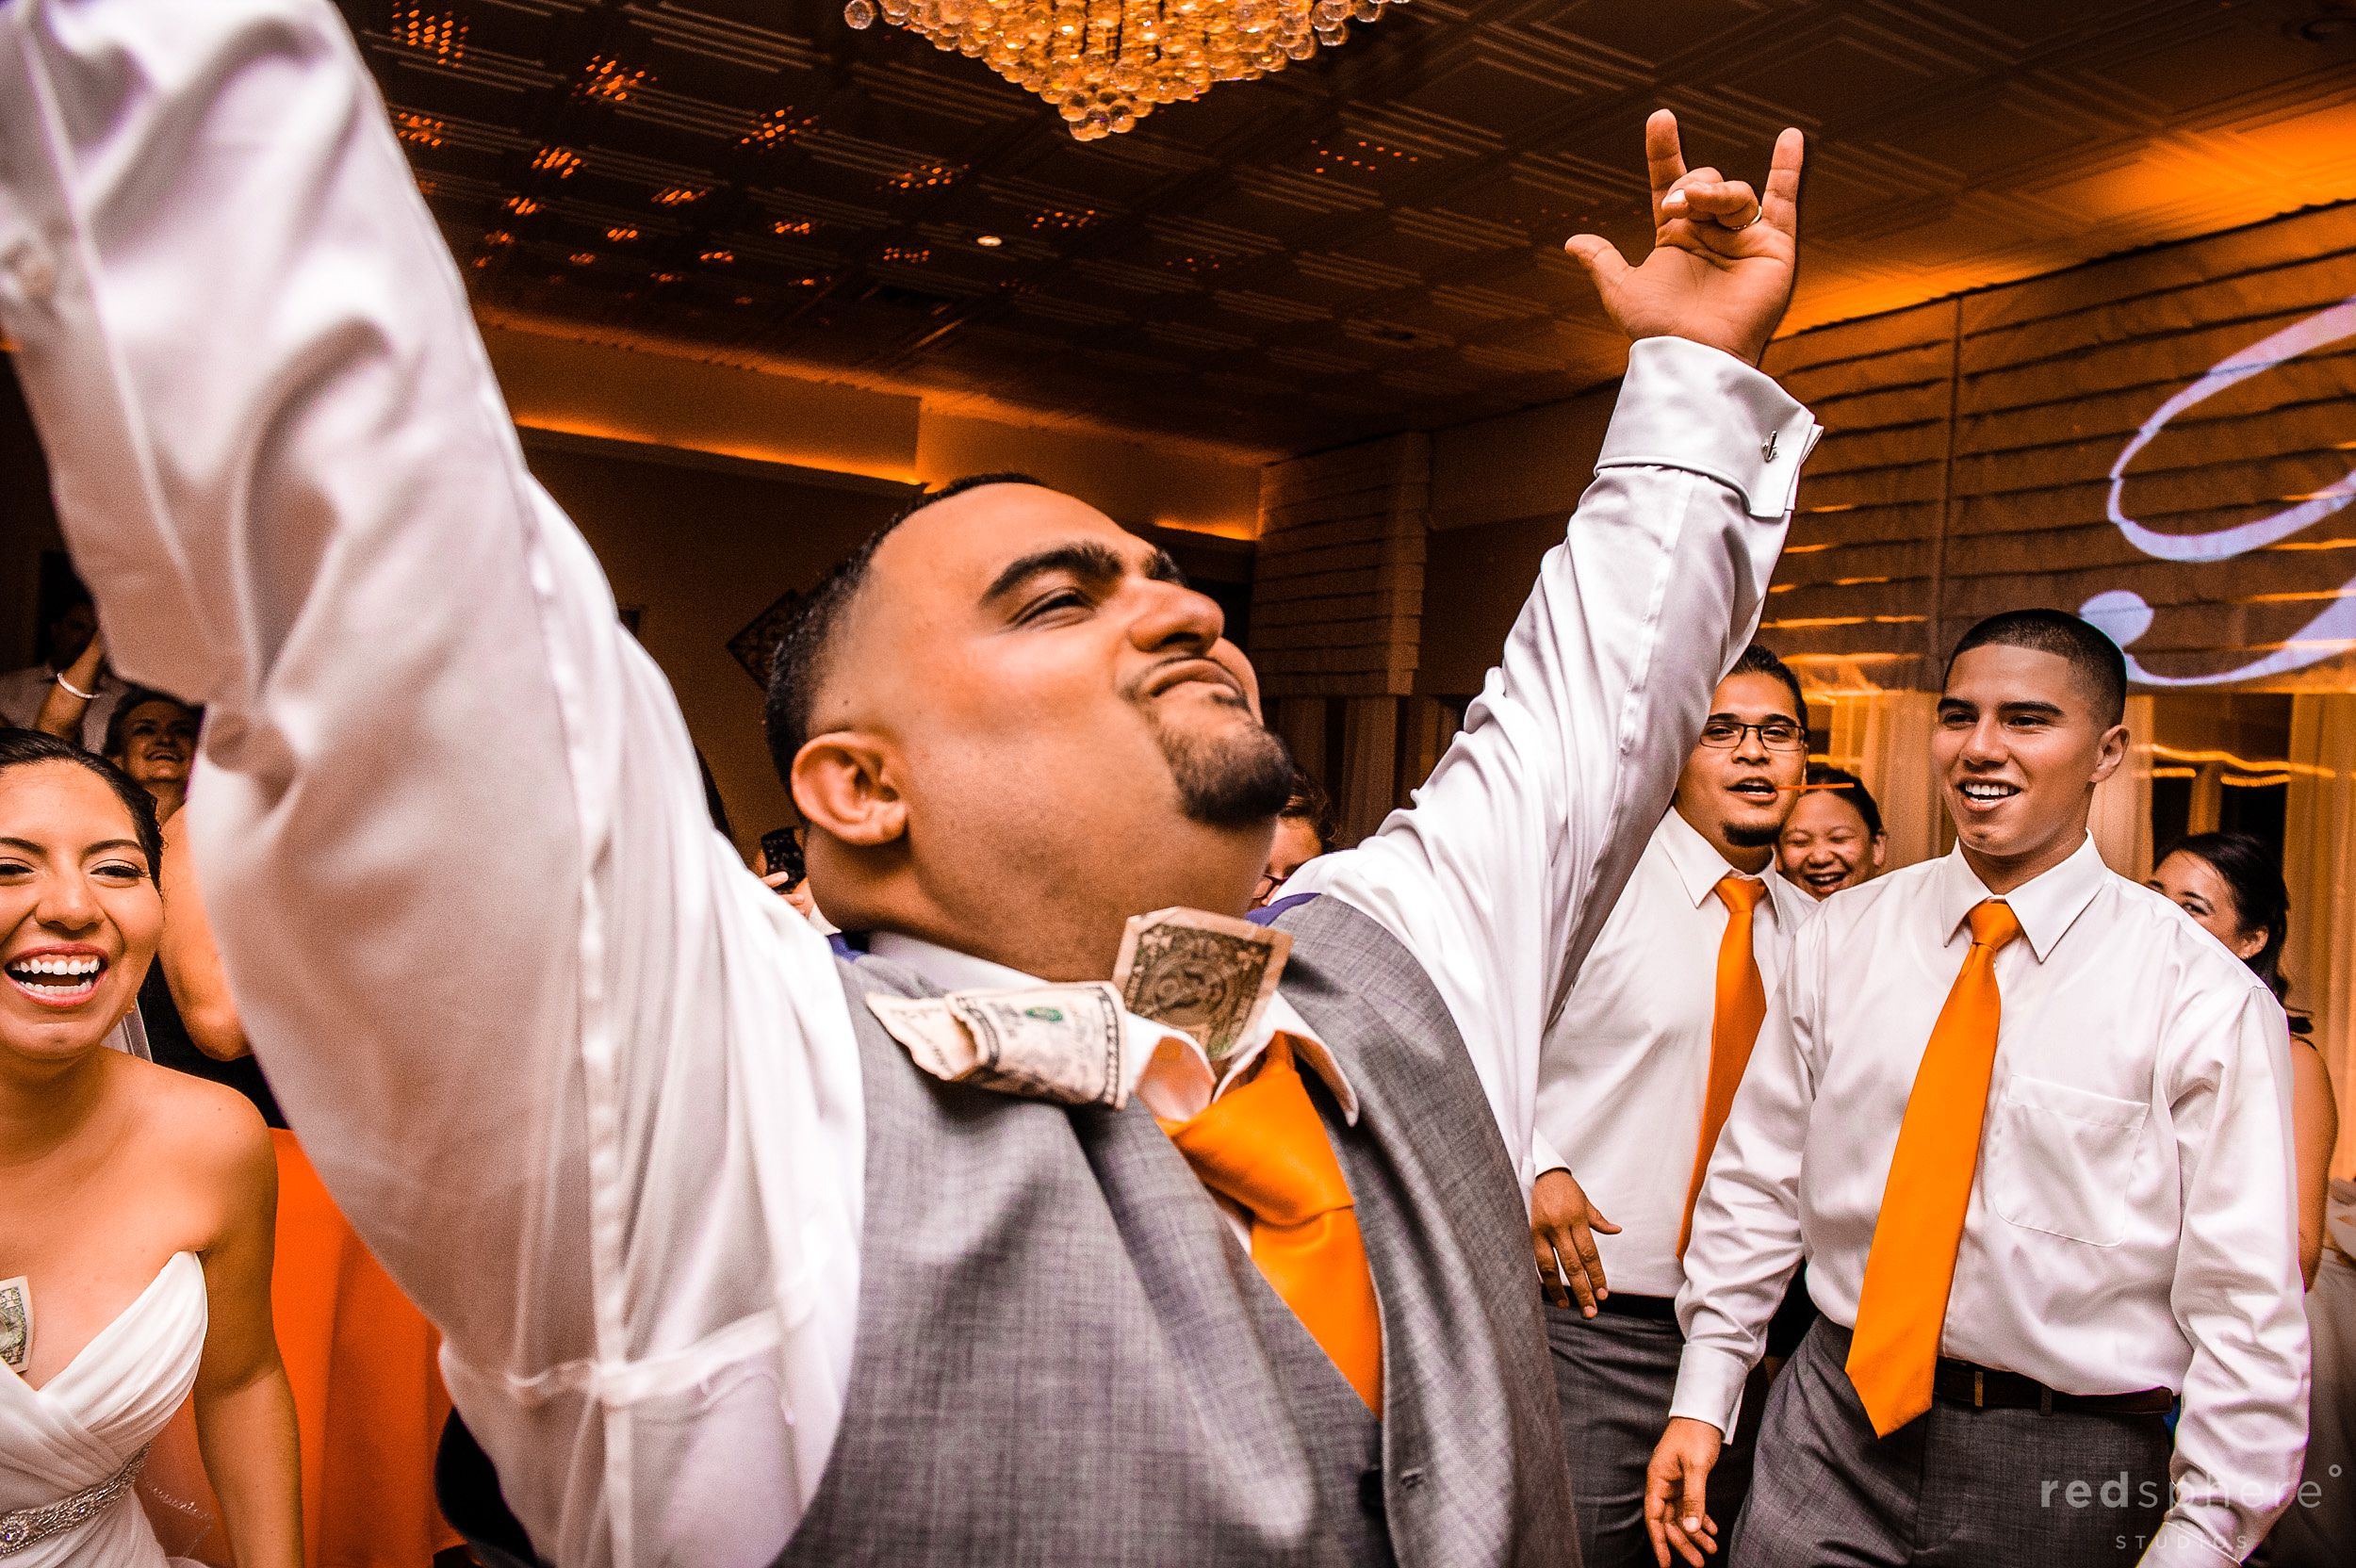 Groom Enjoying His Night With Bride and Closest Friends